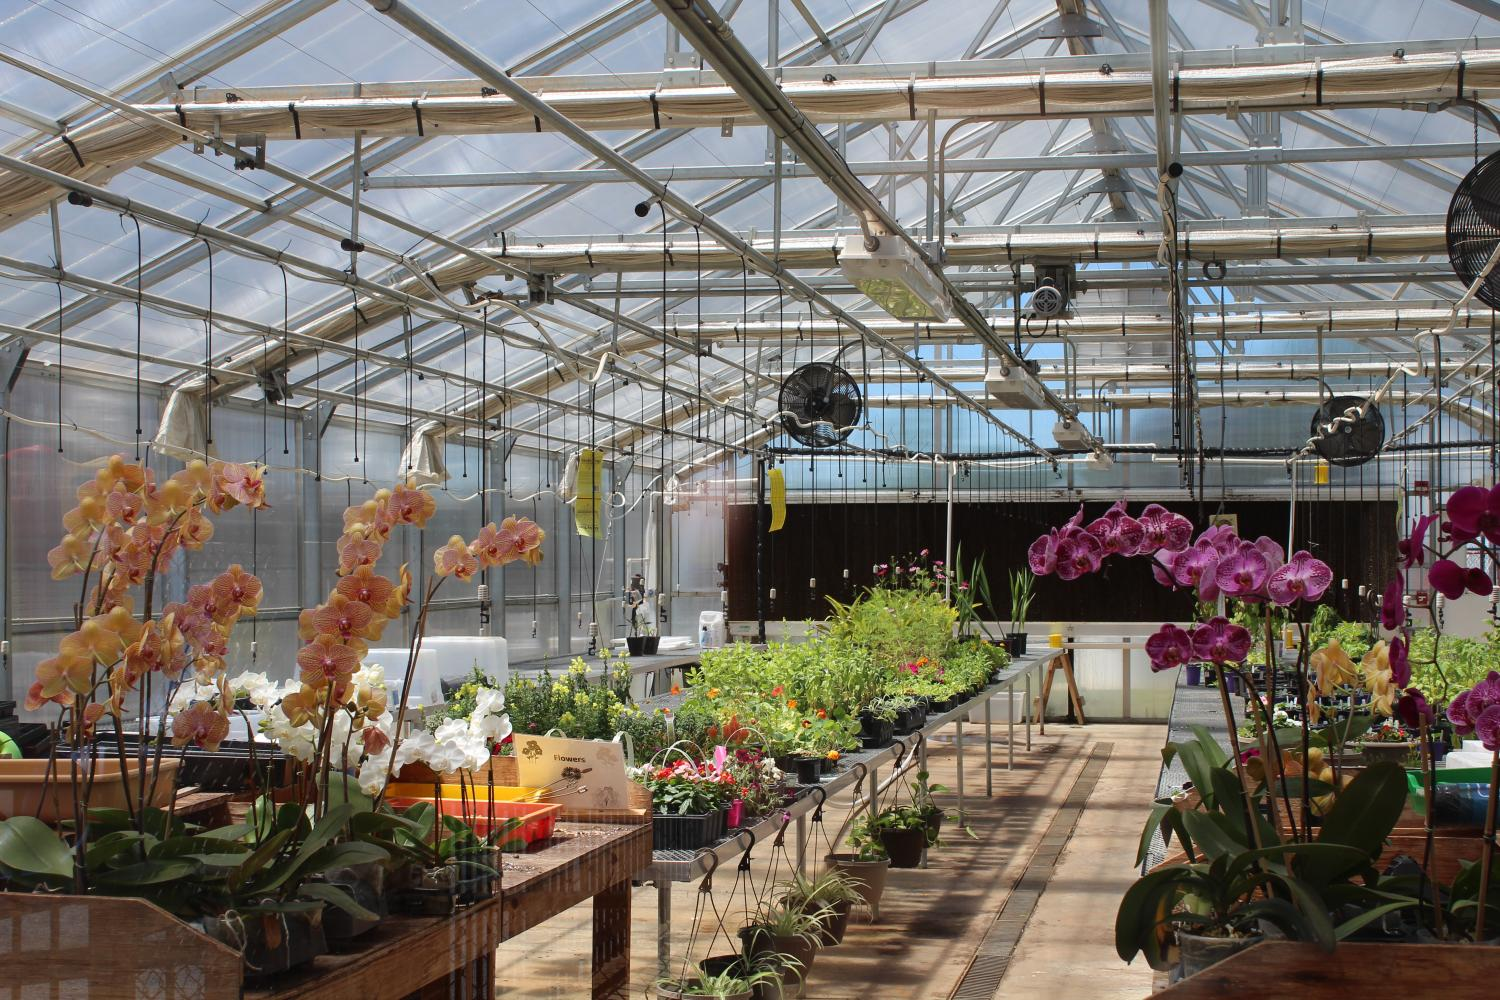 NC's own Green House Gang plans to host a plant sale May 11-13.  The times include 3:30-5:00 pm on Thursday and Friday, and also Saturday from 9:00-1:00 pm. Orchids, flowers, veggies, and hanging baskets will be available for purchase. Come out and support your warriors!